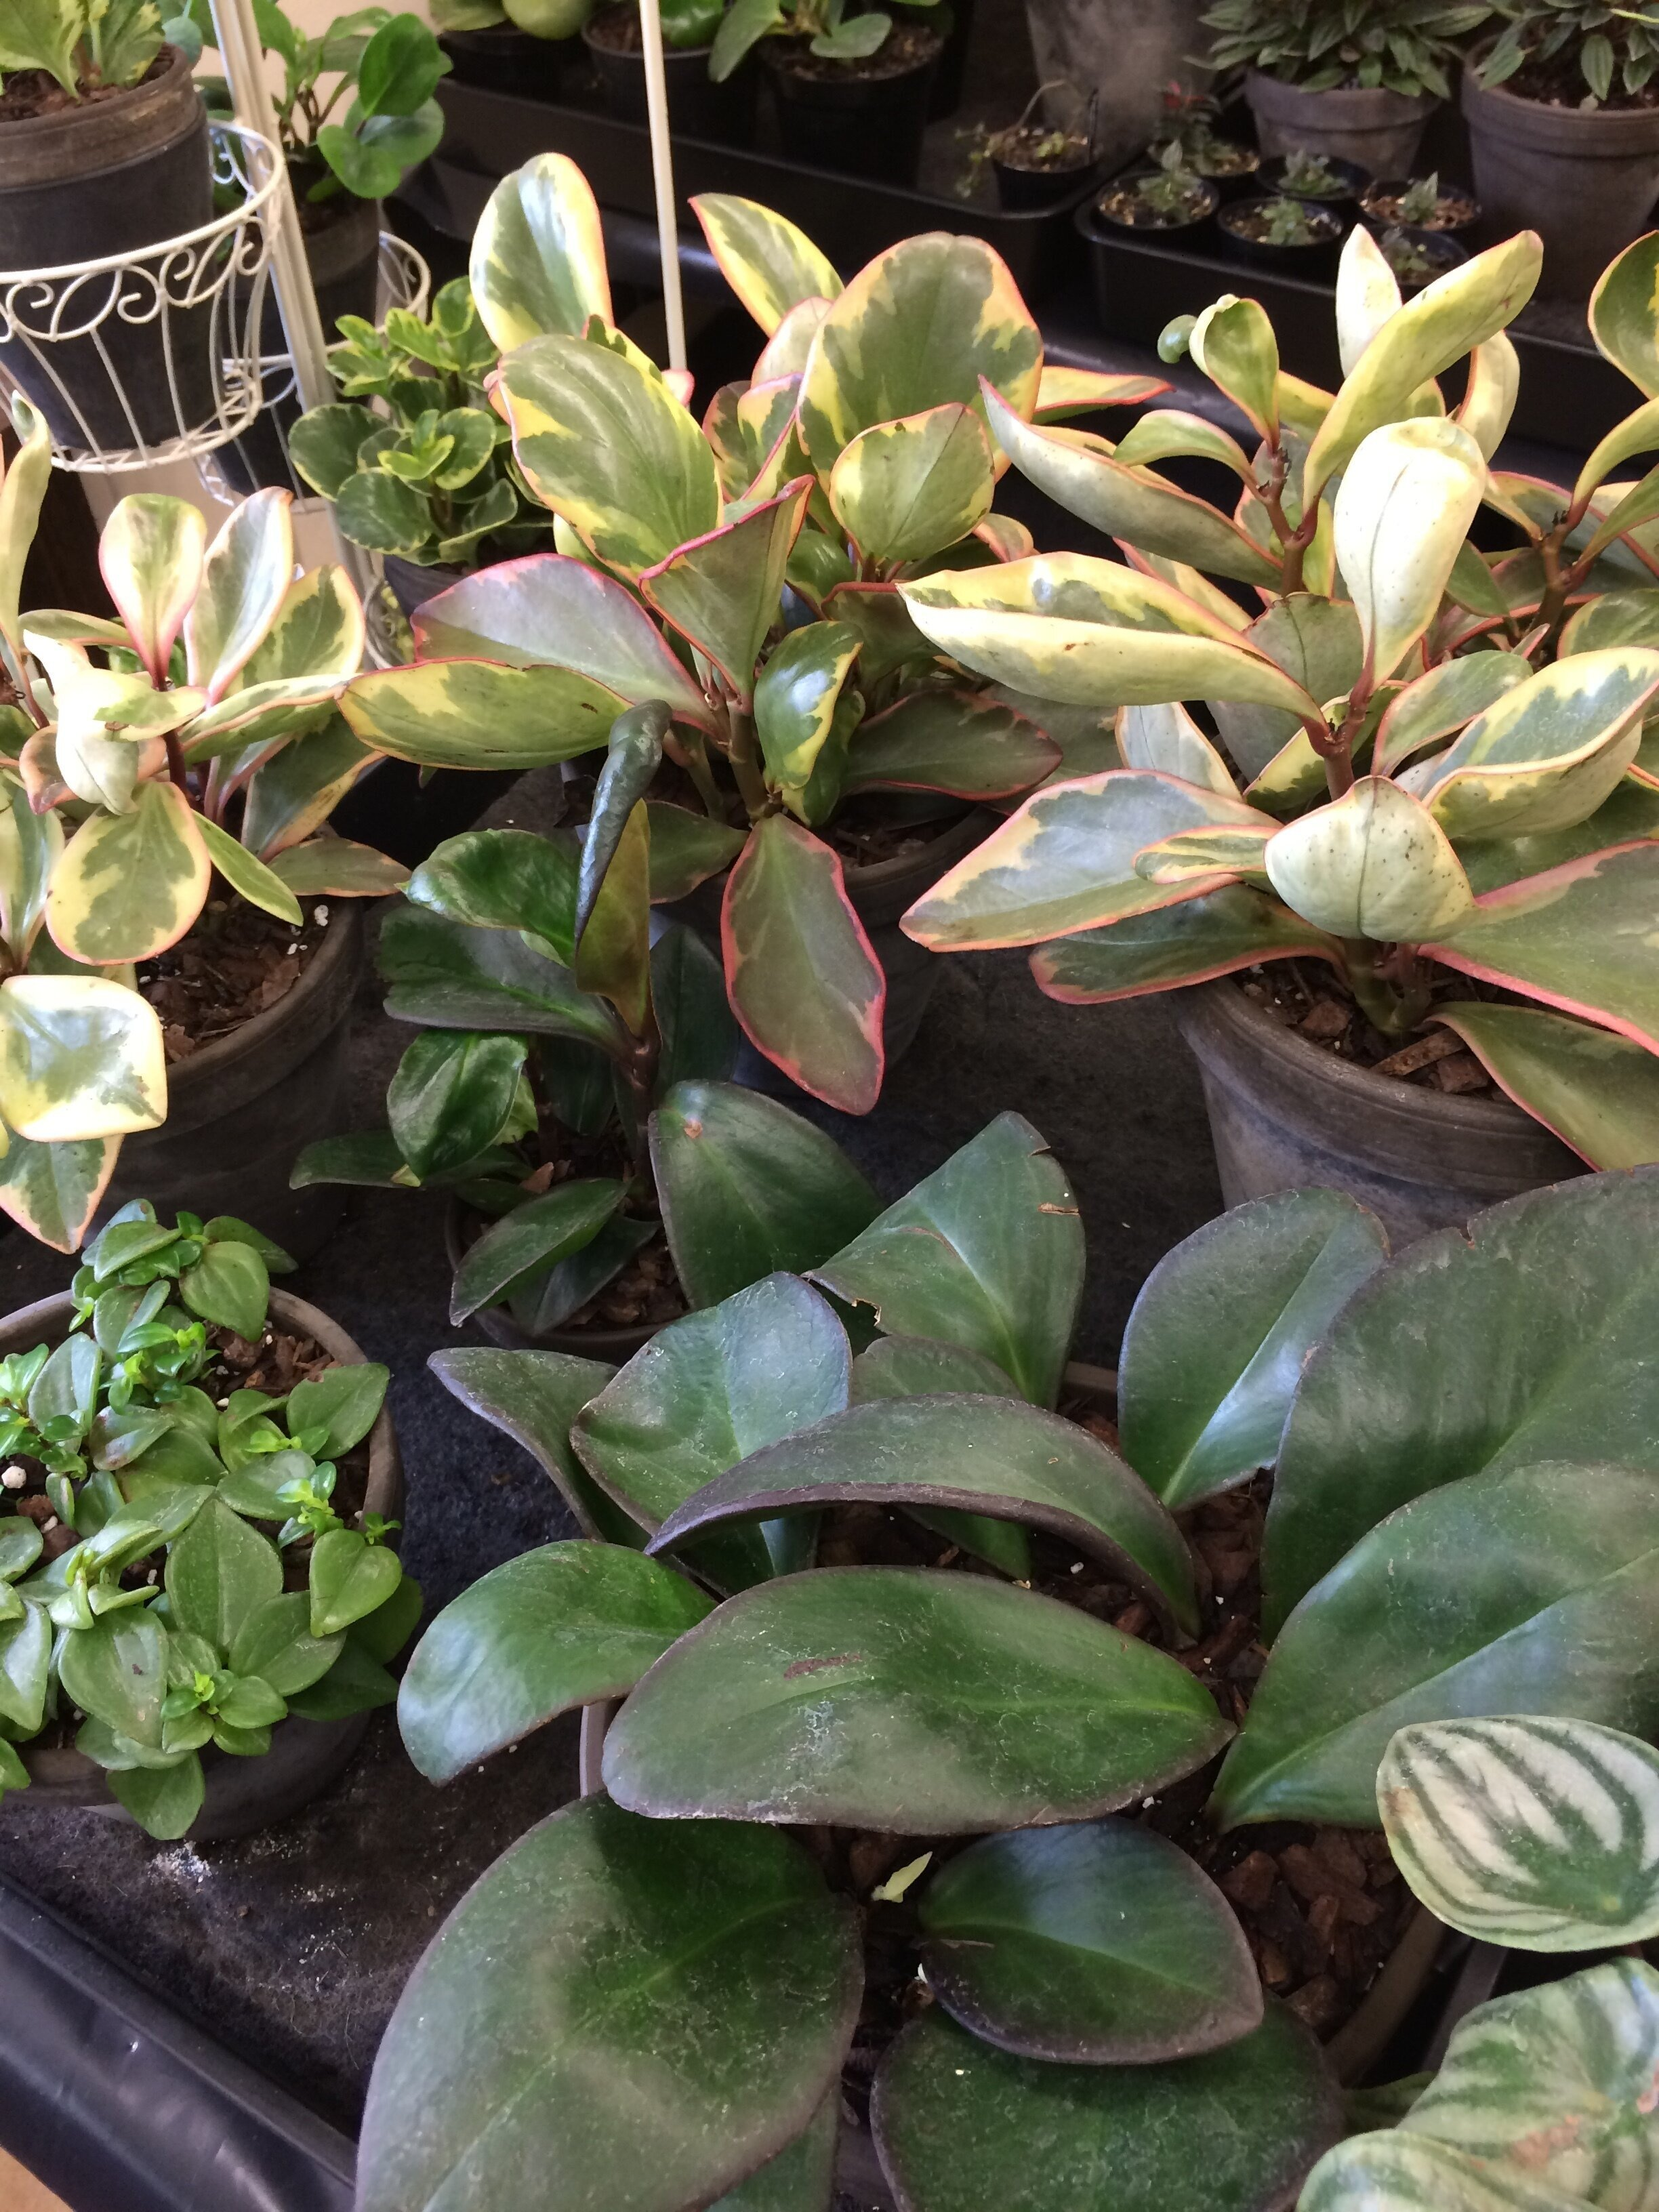 Some of Sally's Peperomia cultivars. Photograph: Jane Perrone.